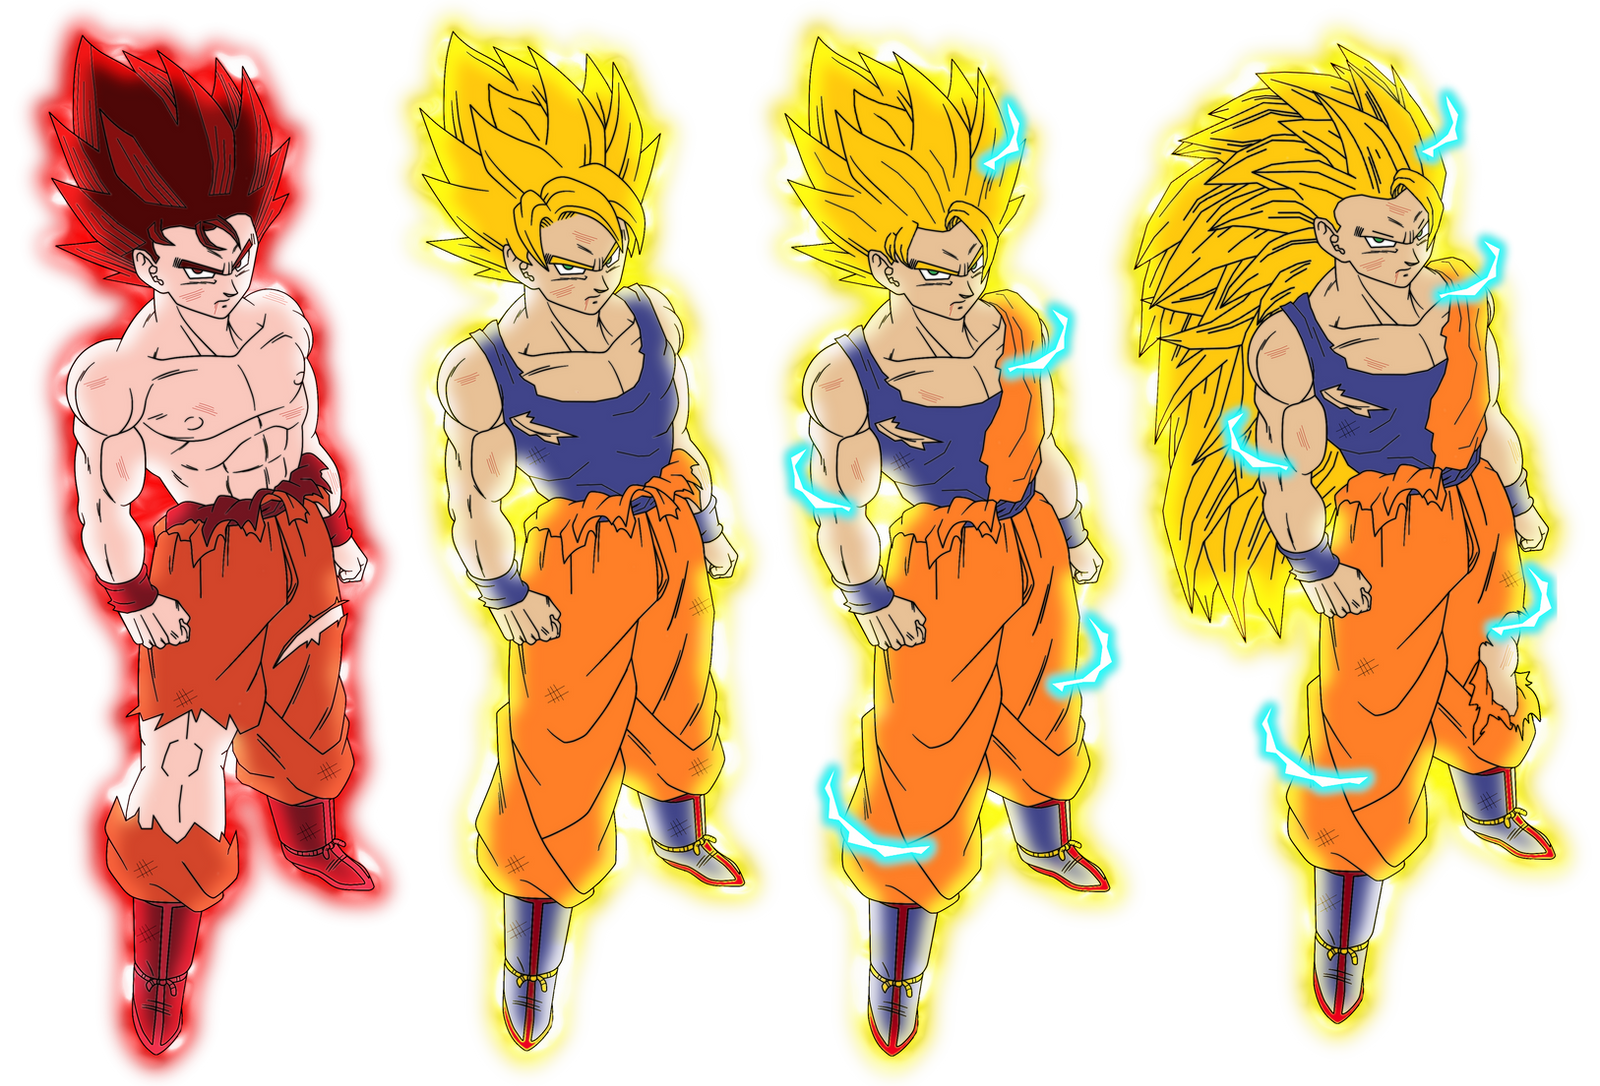 Manycam effect super saiyan hair - Manycam Effect Super Saiyan Hair 41